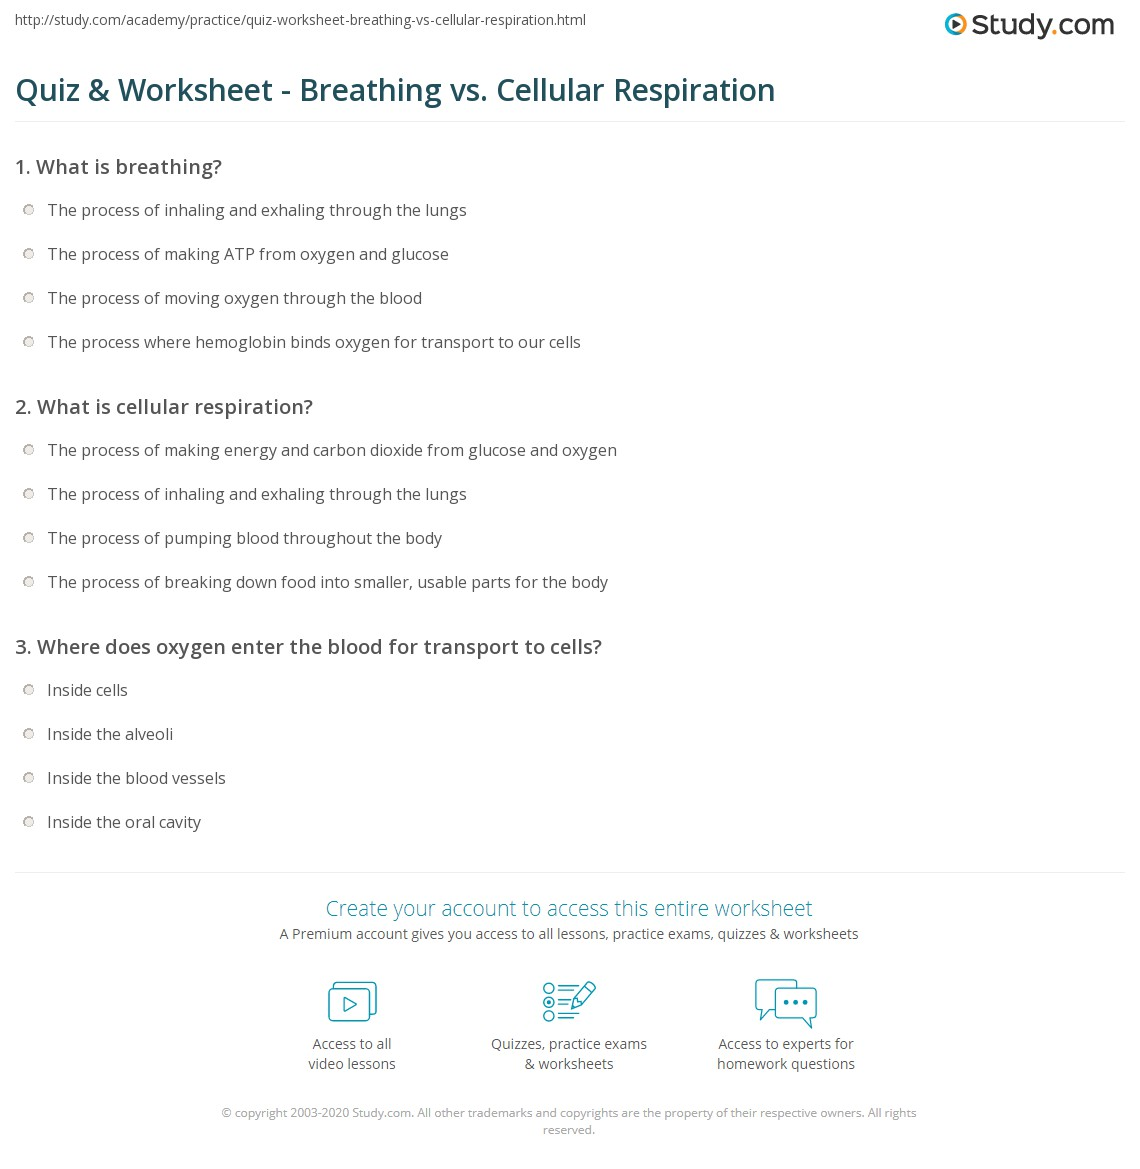 Quiz & Worksheet - Breathing vs. Cellular Respiration | Study.com